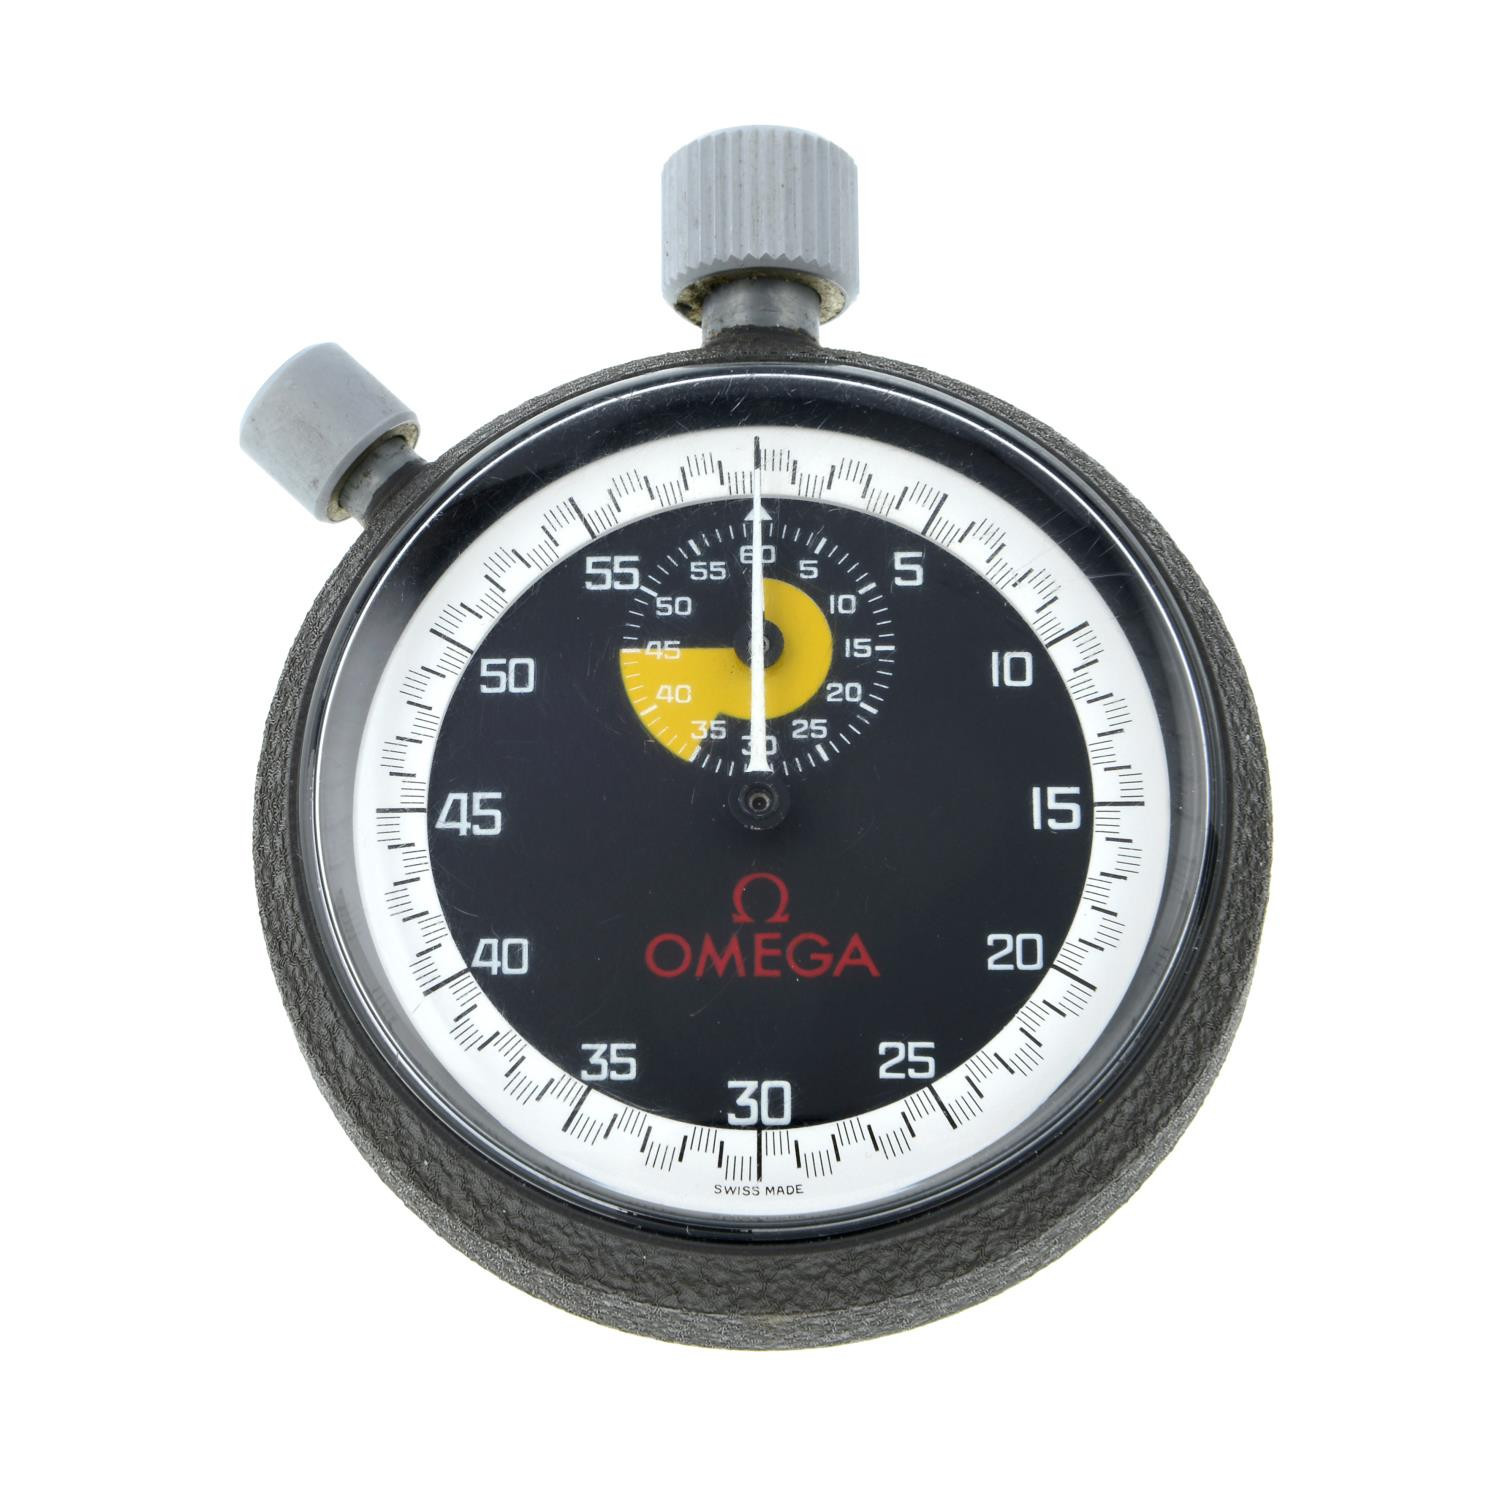 Jack Taylor's stopwatch, manufactured by Omega, is expected to fetch up to £5,000 at auction ©Fellows